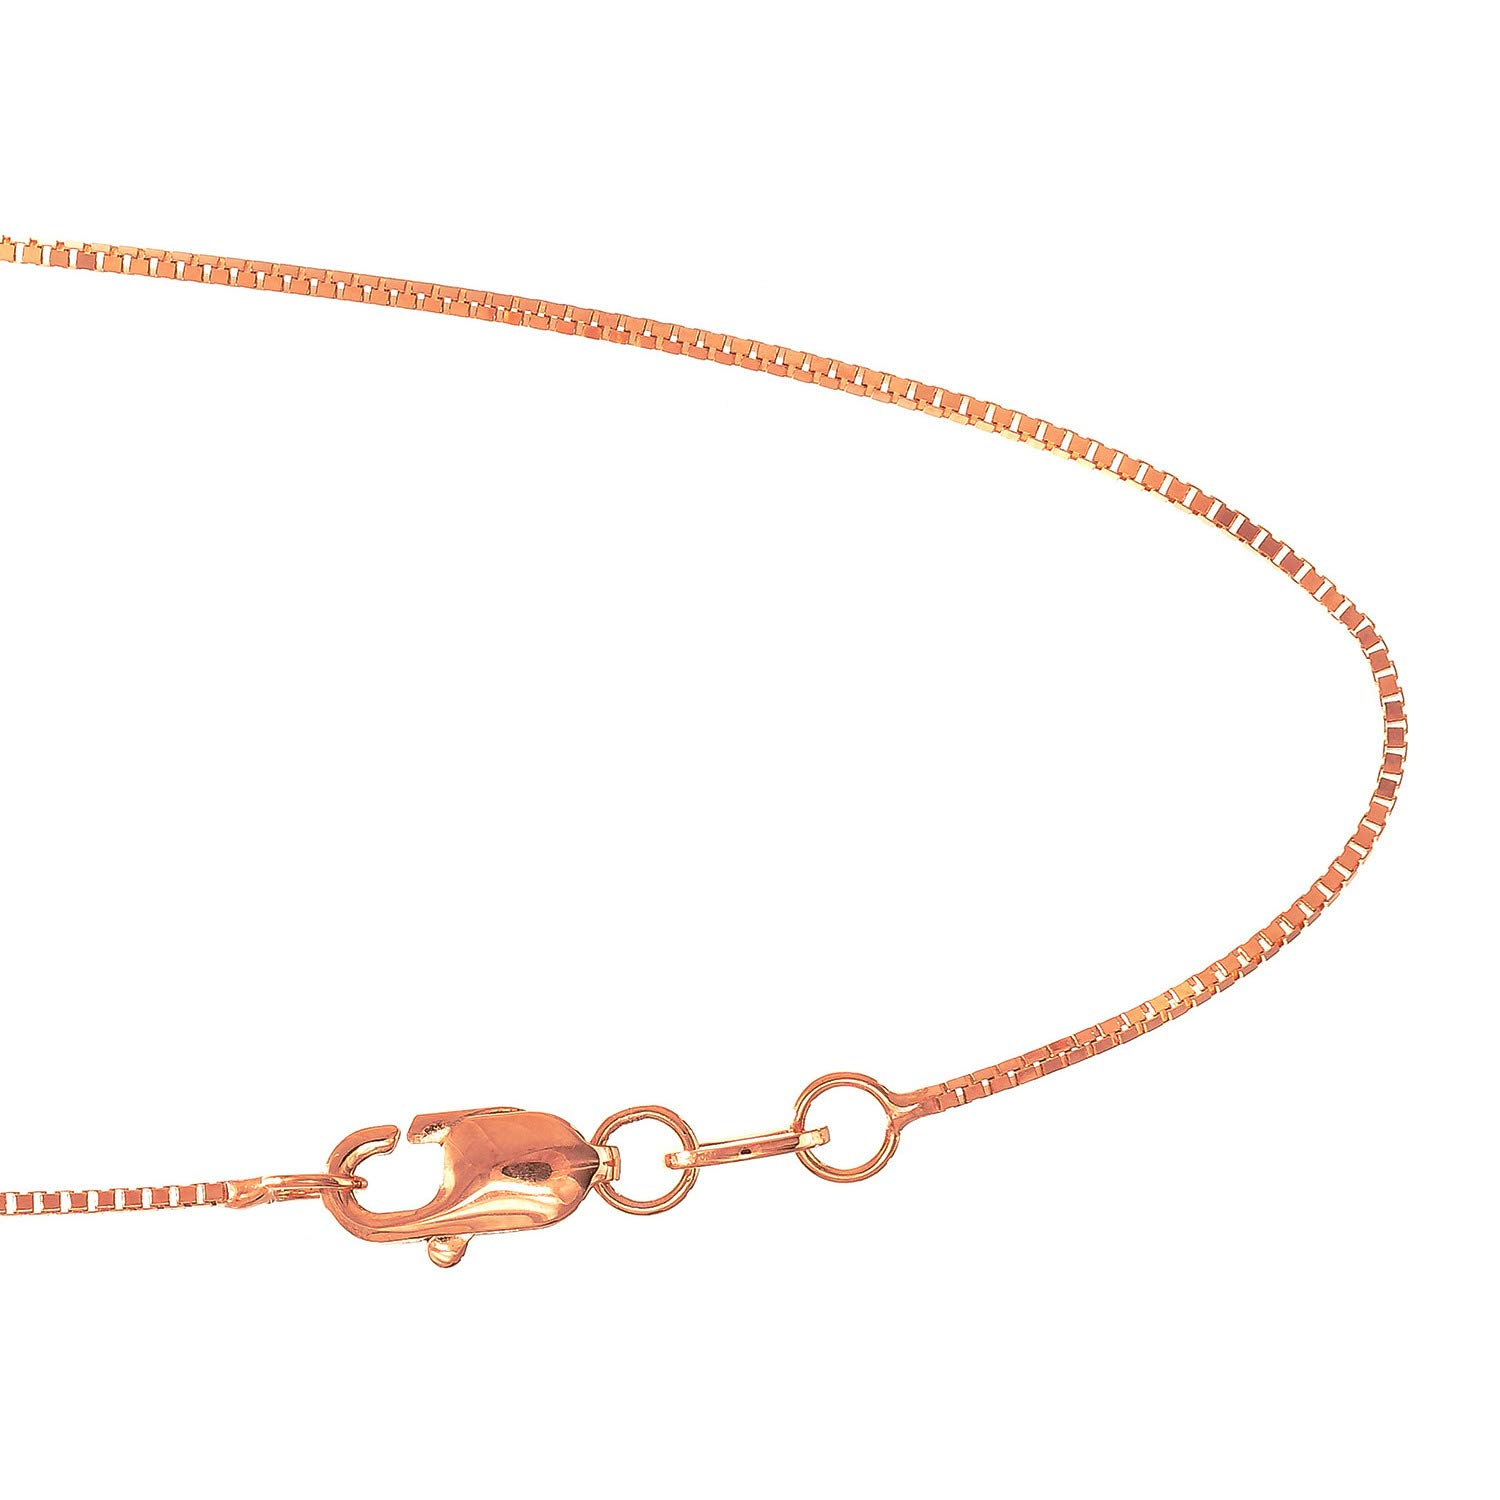 18 Inches Lobster Claw Clasp 18k Solid Rose Gold .6 mm Box Chain Necklace